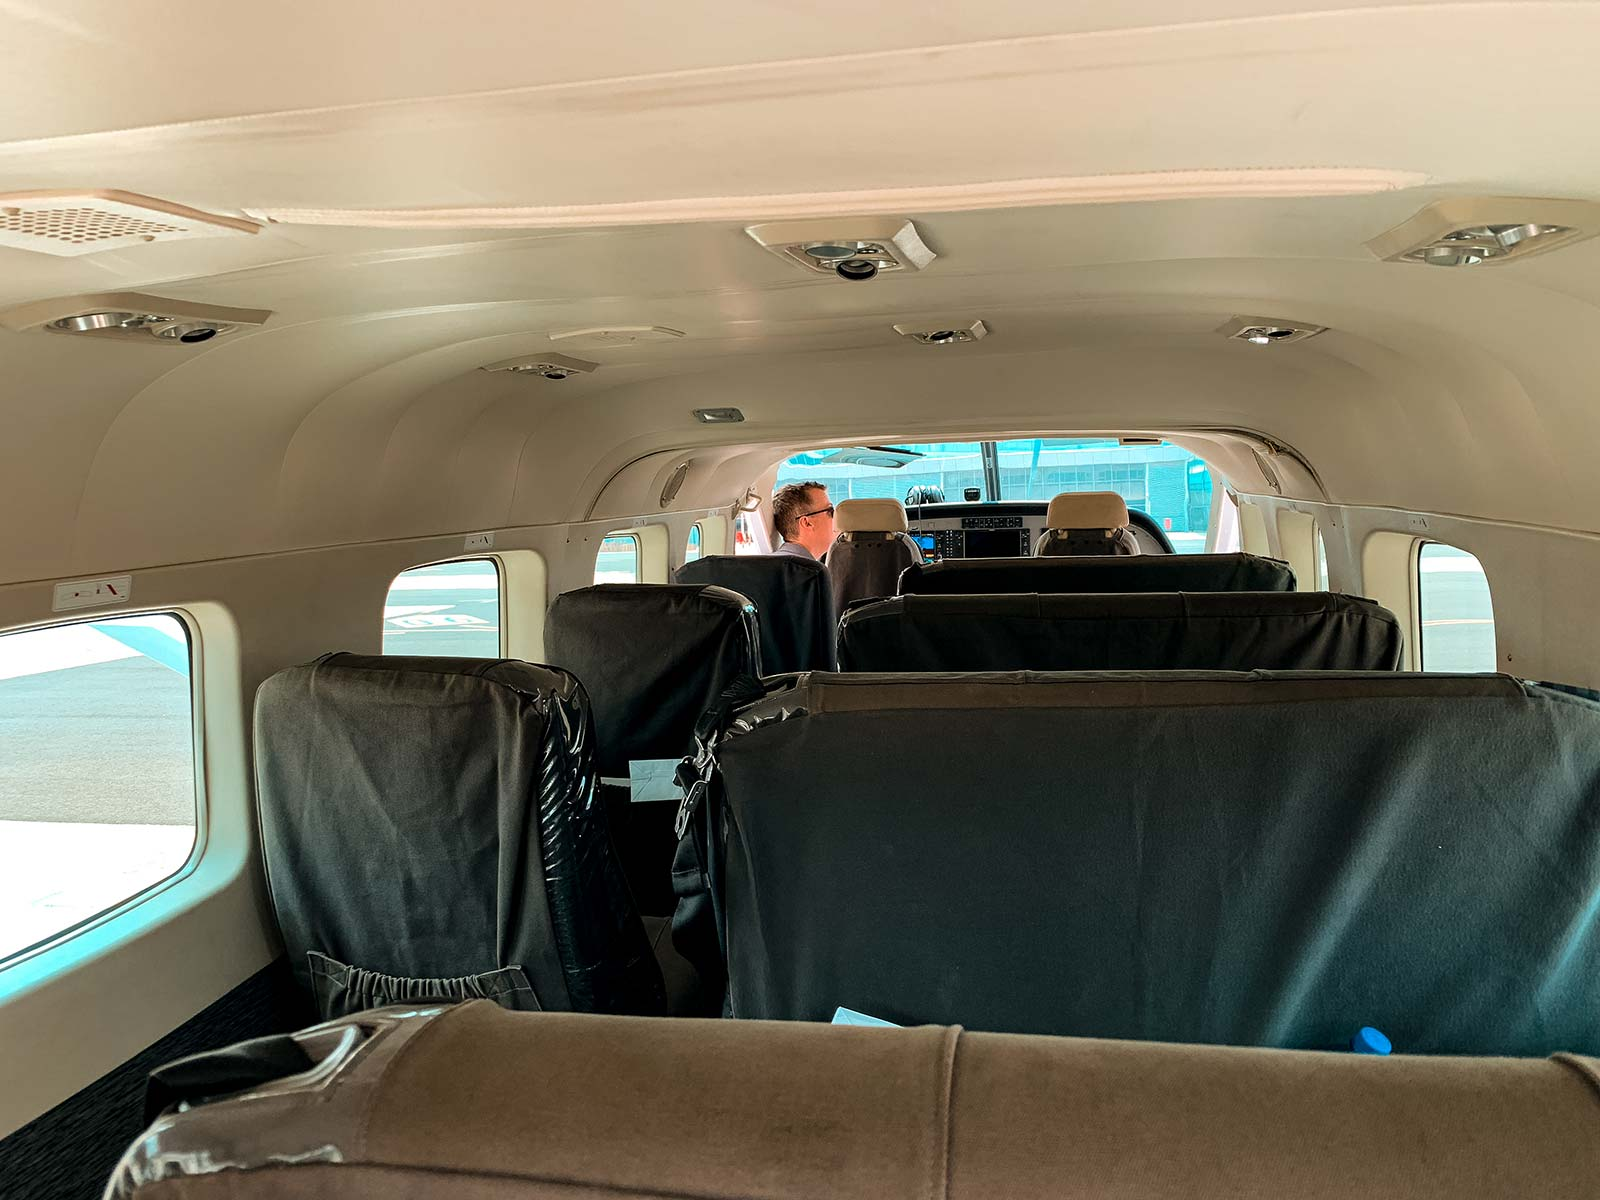 Inside small plane in Botswana, Africa. Cheetah, cubs & the most incredible dinner setting